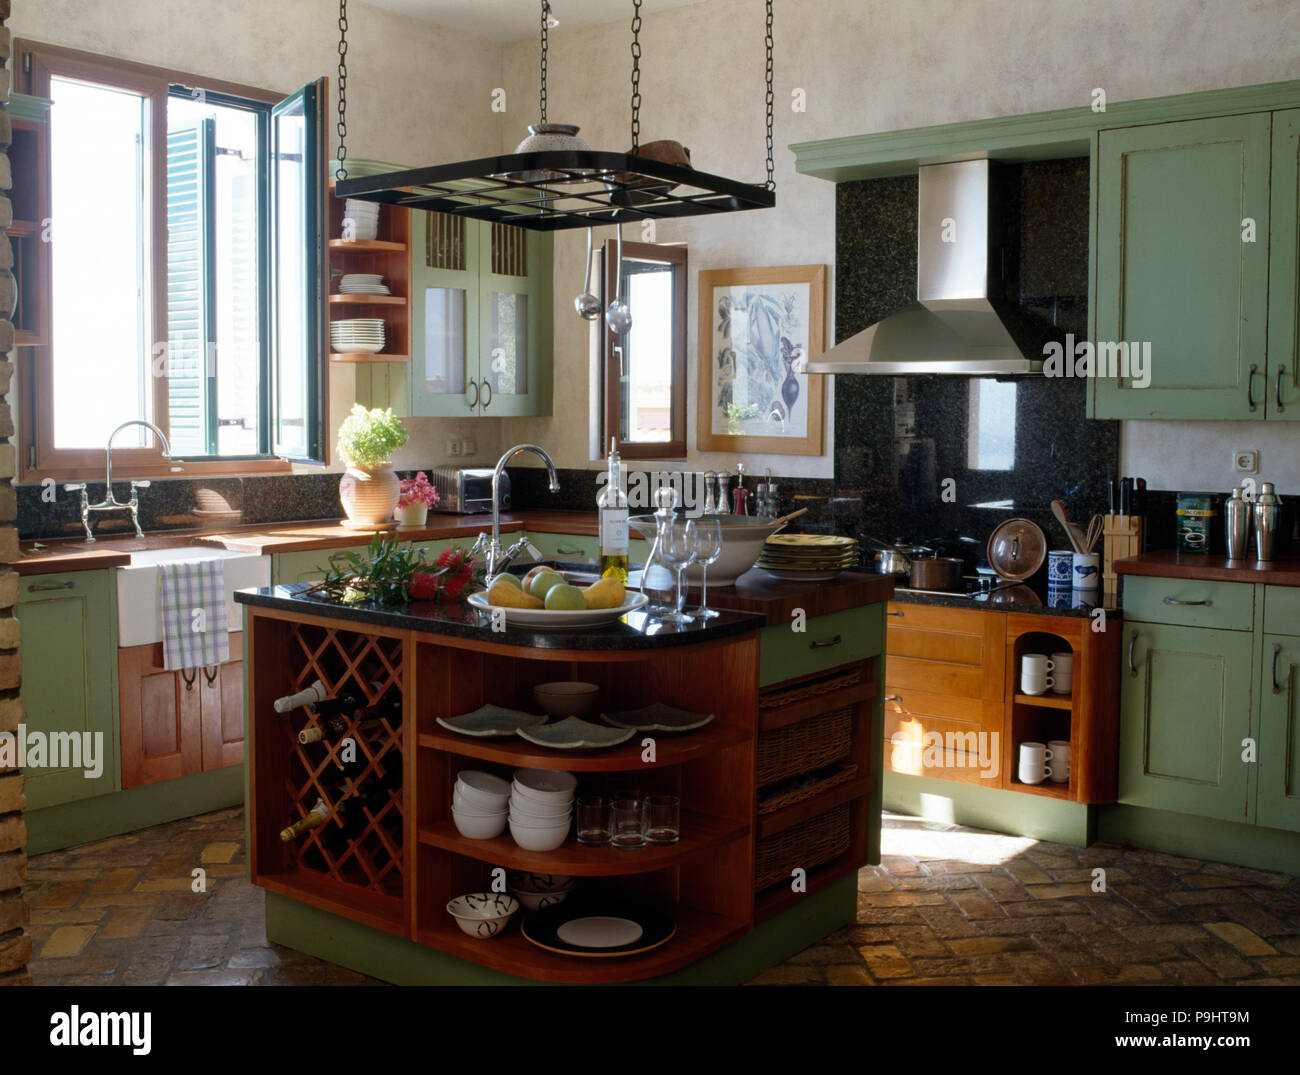 Hanging Rack Above Island Unit With An Integral Wine Rack In A Coastal Kitchen With Green Doors On Fitted Cupboards Stock Photo Alamy